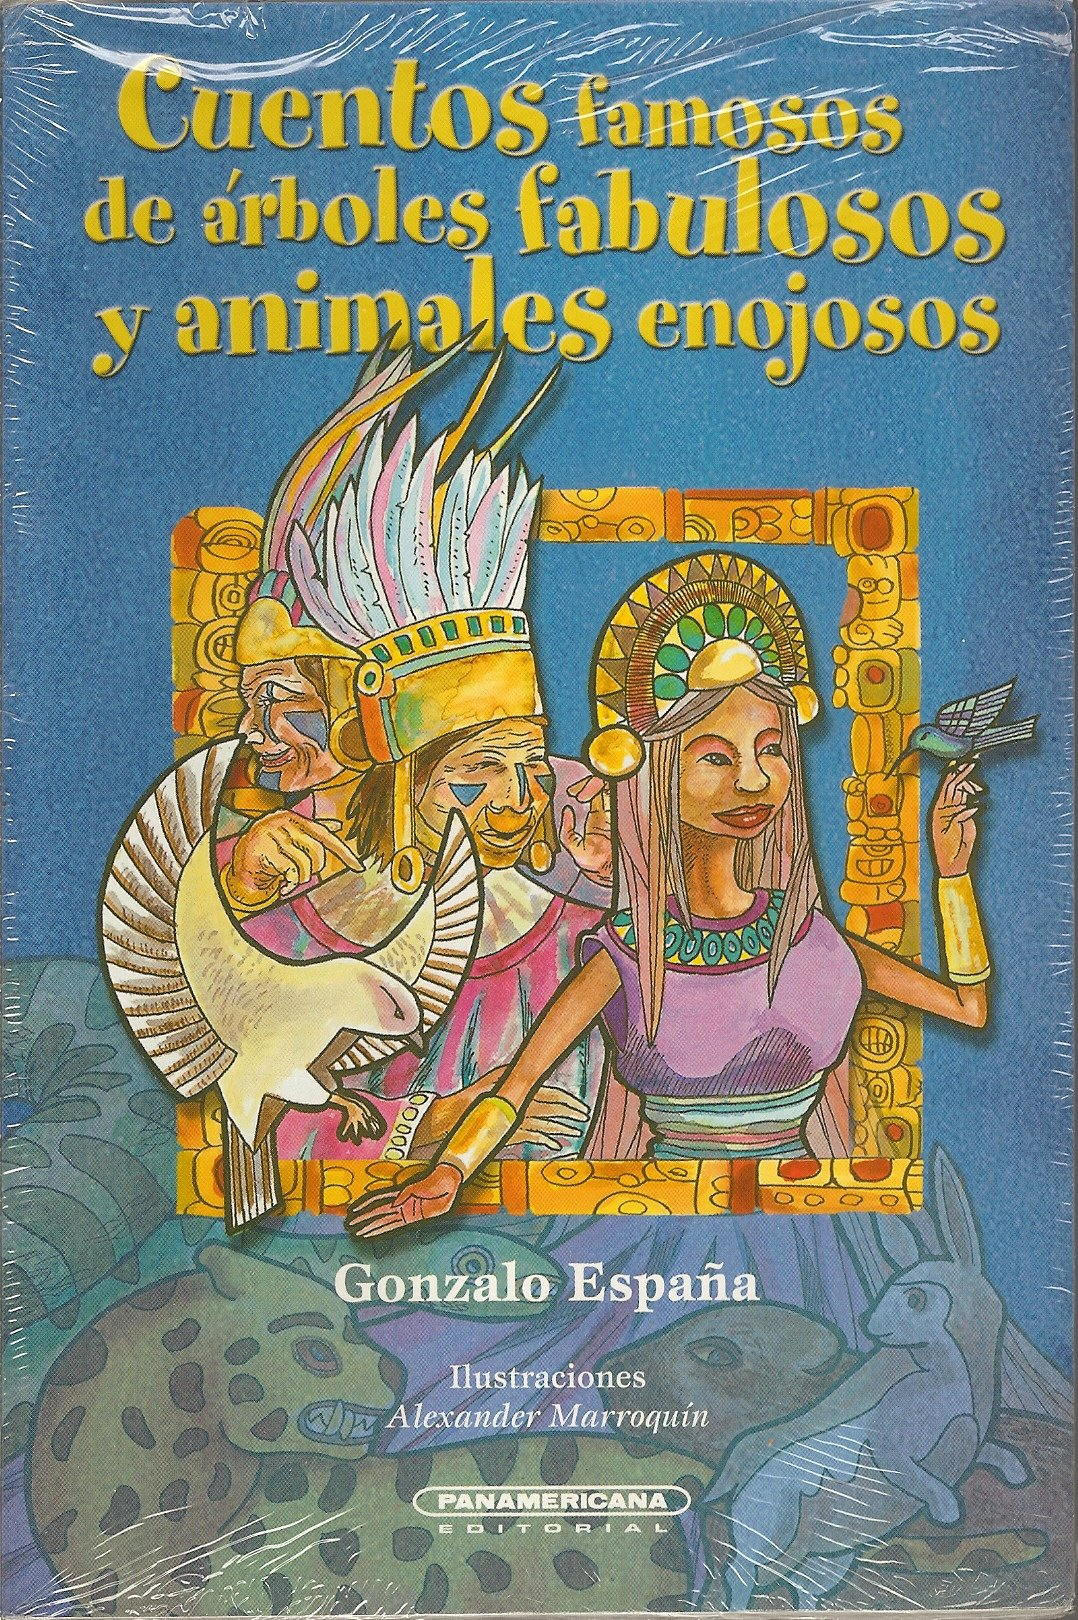 Cuentos famosos de Arboles fabulosos y animales enojosos / Famous stories of annoying fabulous and animal trees Literatura Juvenil / Junior Literature: ...